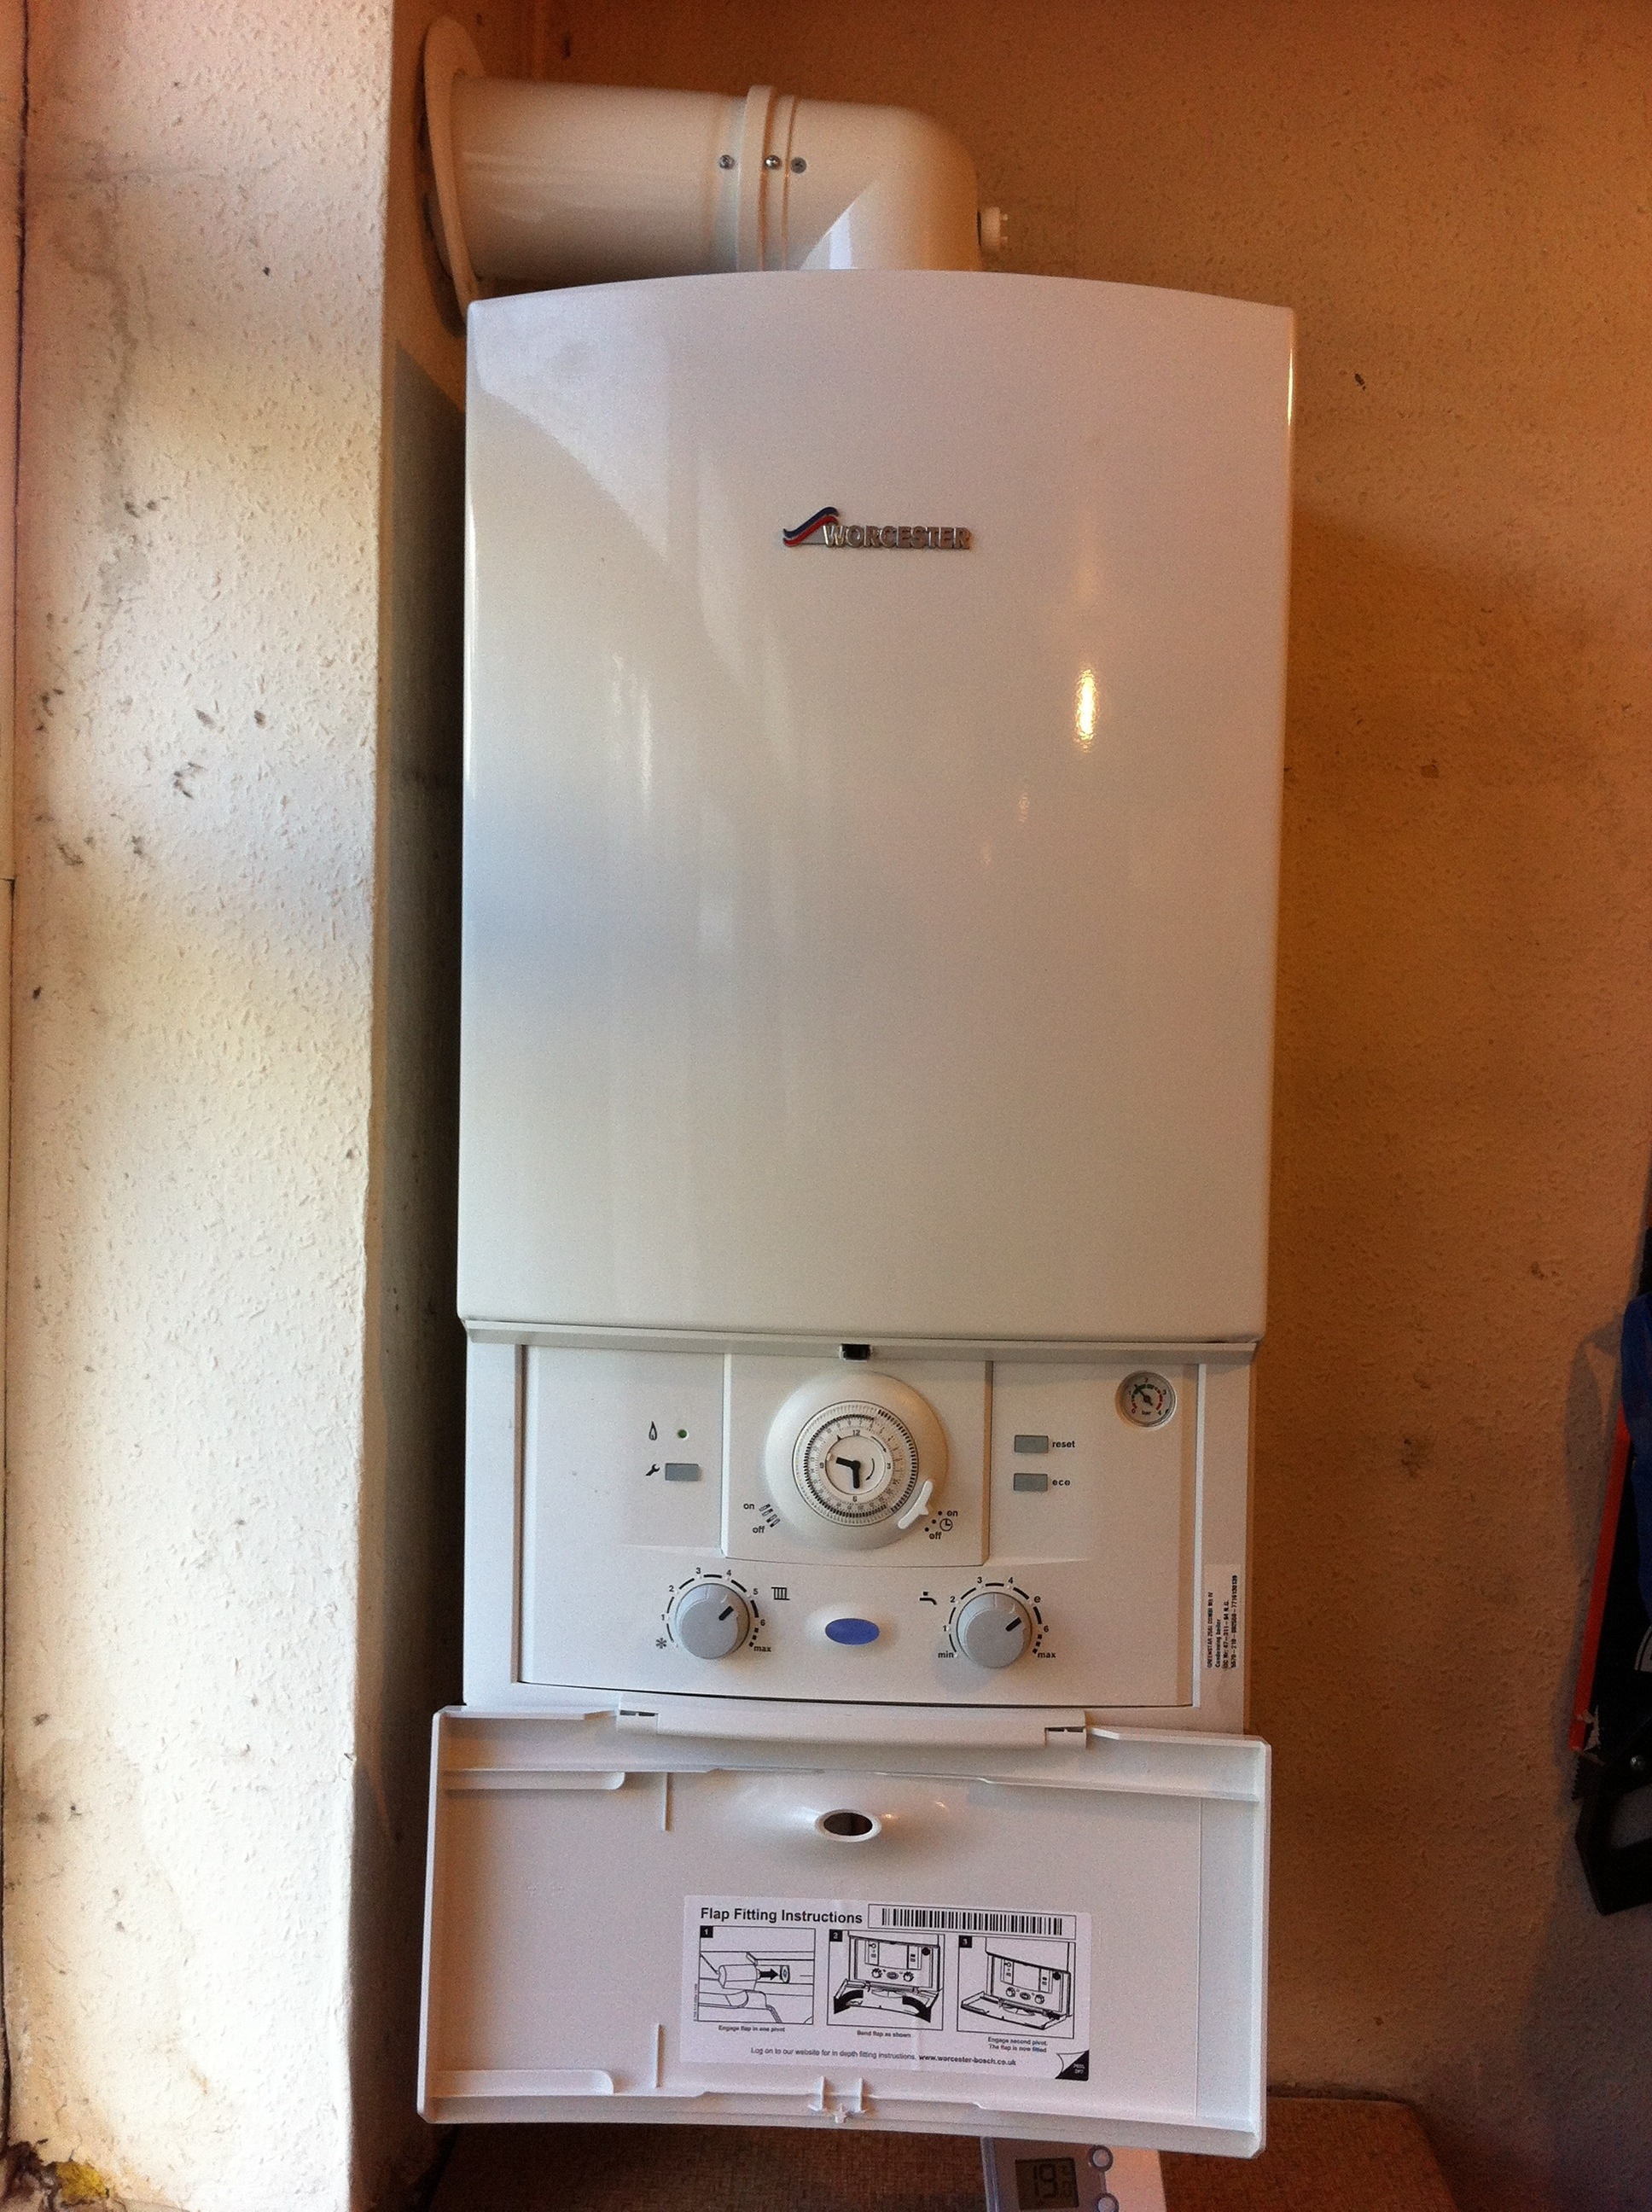 Fitted New Worcester Boiler E17 Rj Gas Appliances Limited